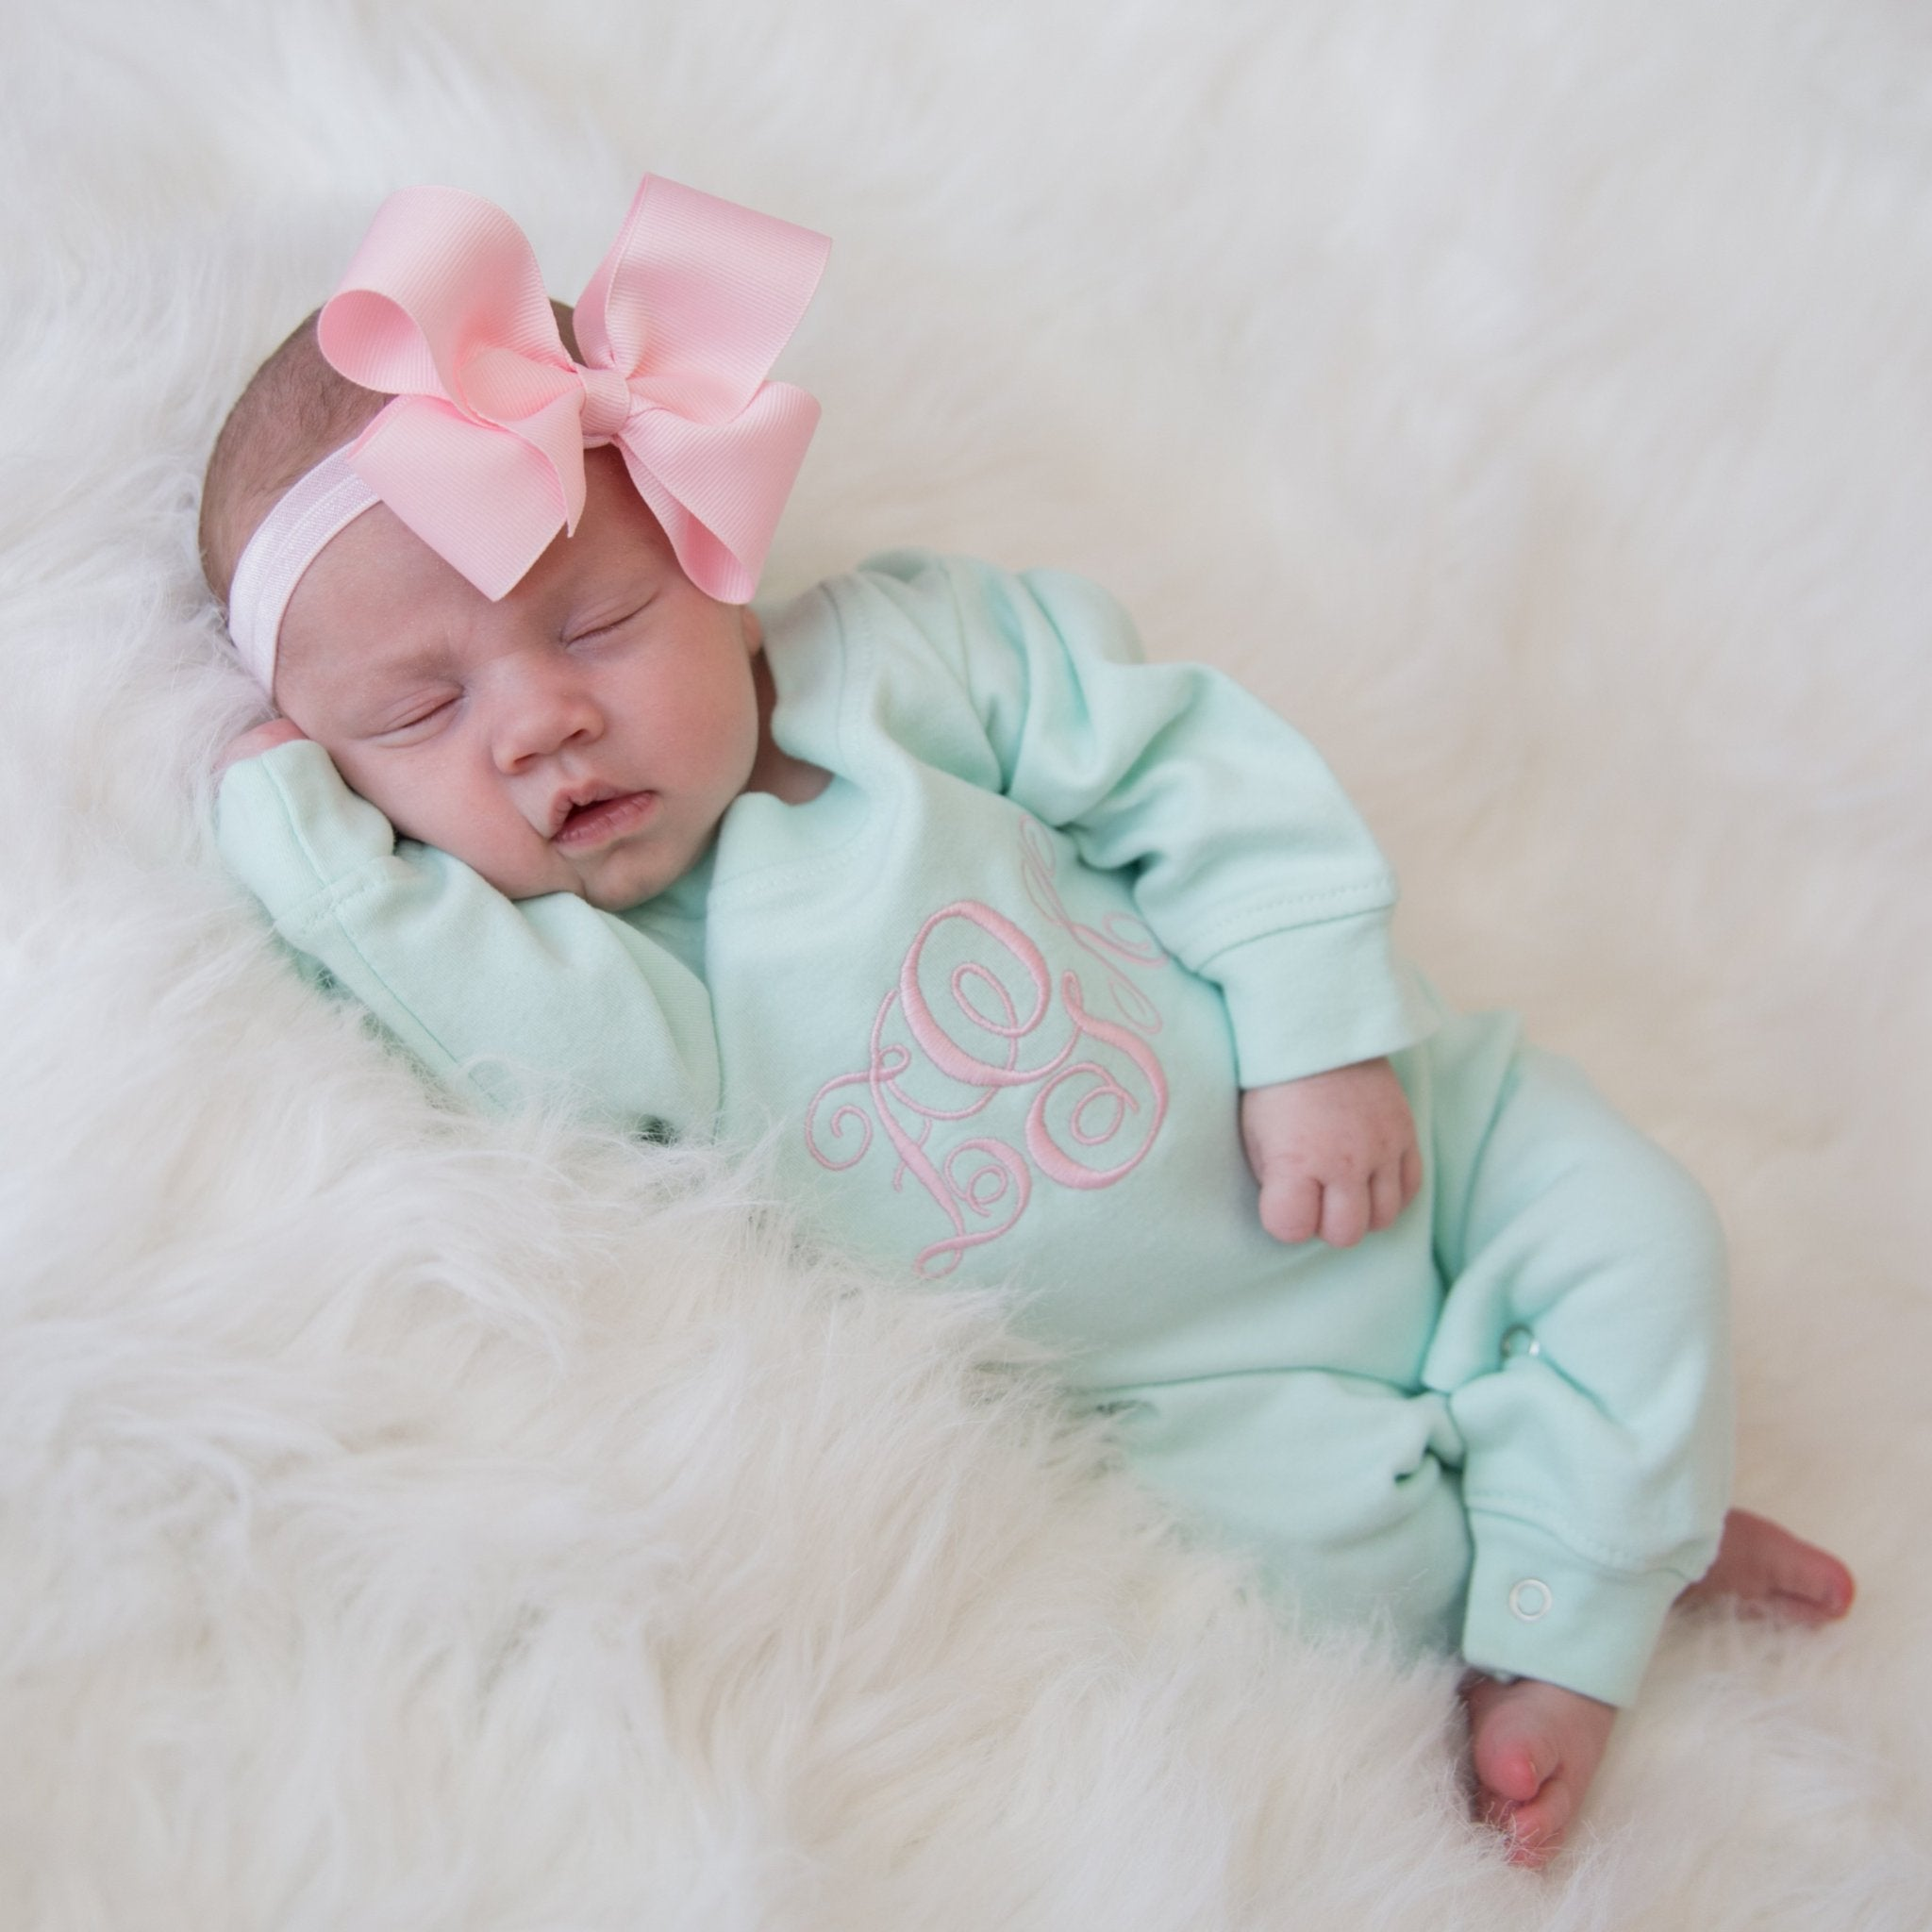 4a11fd8a73b83 Mint and Pink Newborn Baby Girl Coming Home Outfit with Bow Headband